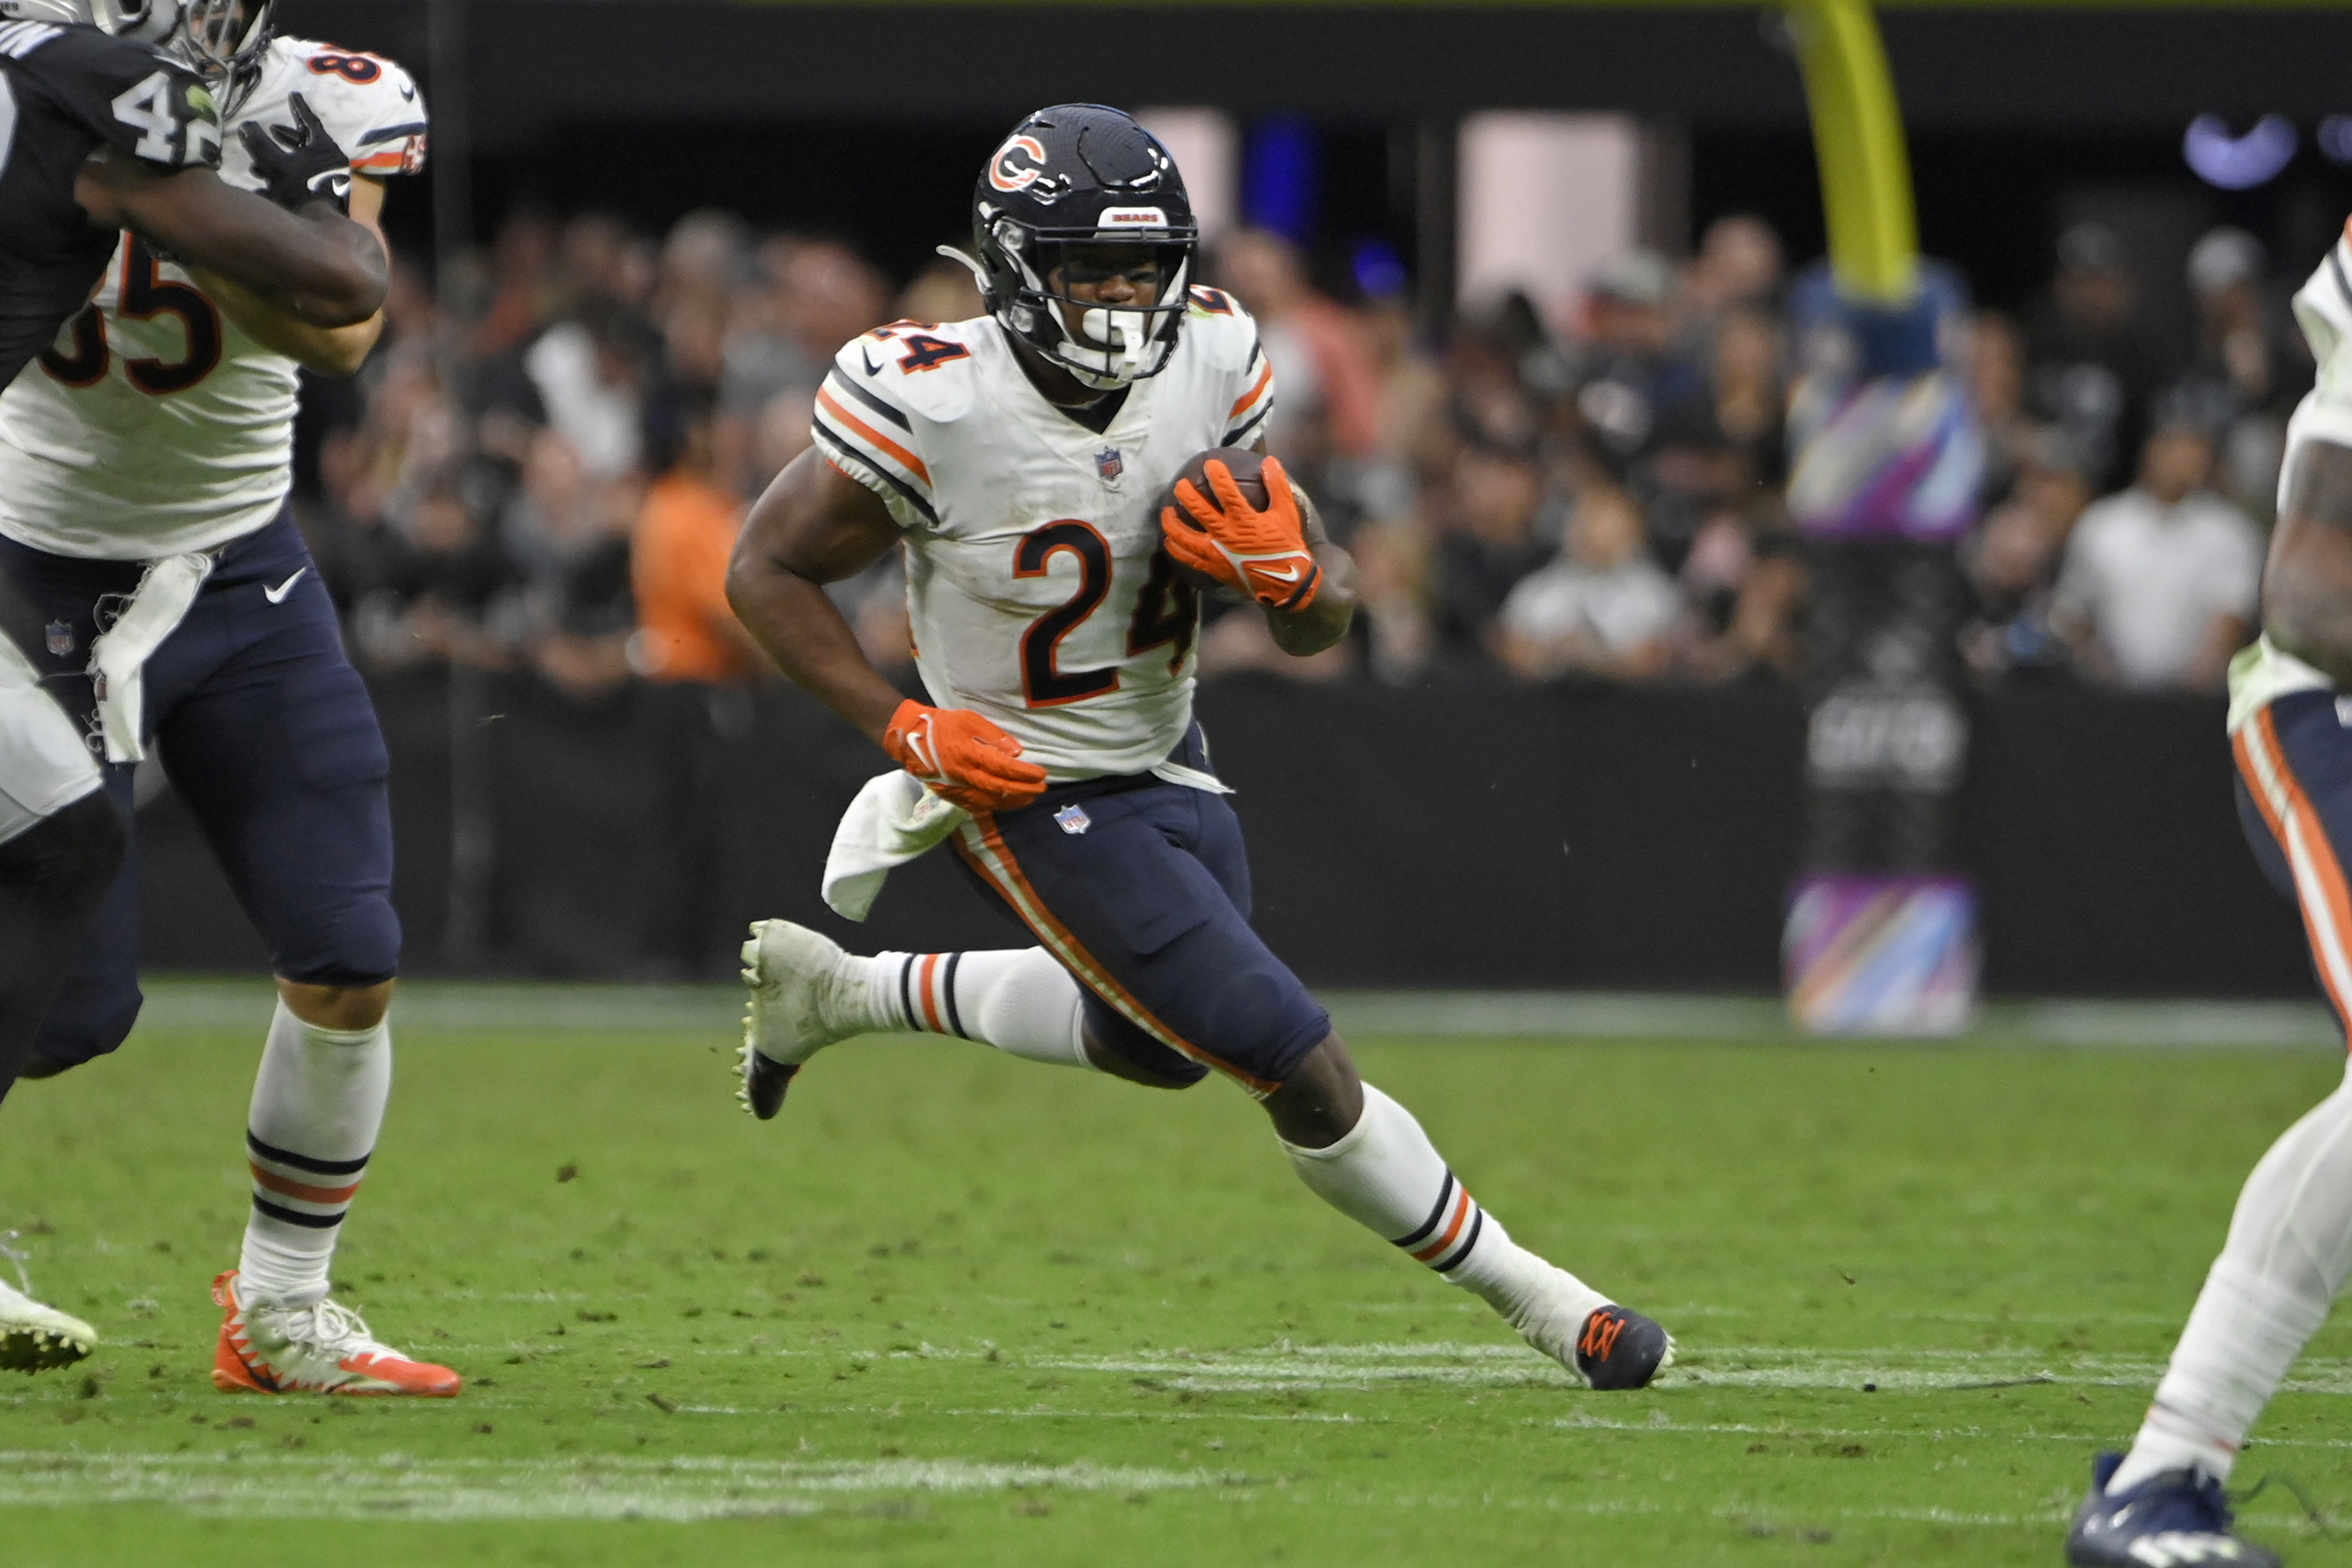 Bears RB Khalil Herbert ran for 75 yards on 18 carries in the win over the Raiders.